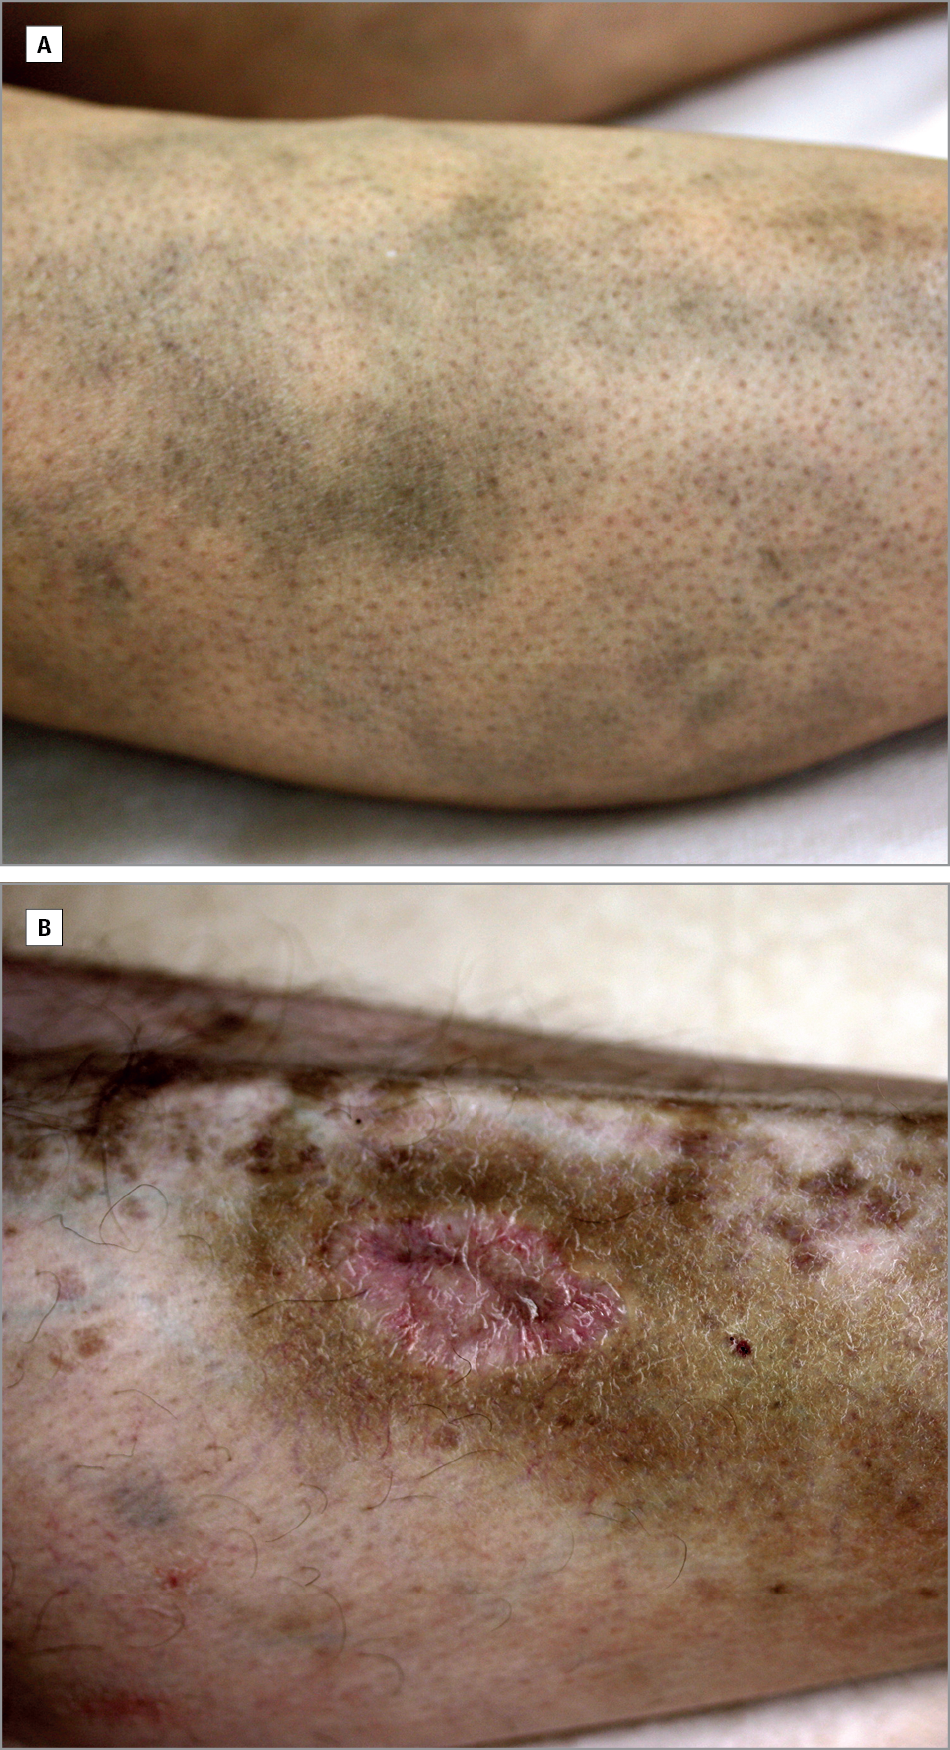 Hydroxychloroquine-Induced Pigmentation in Patients With ...